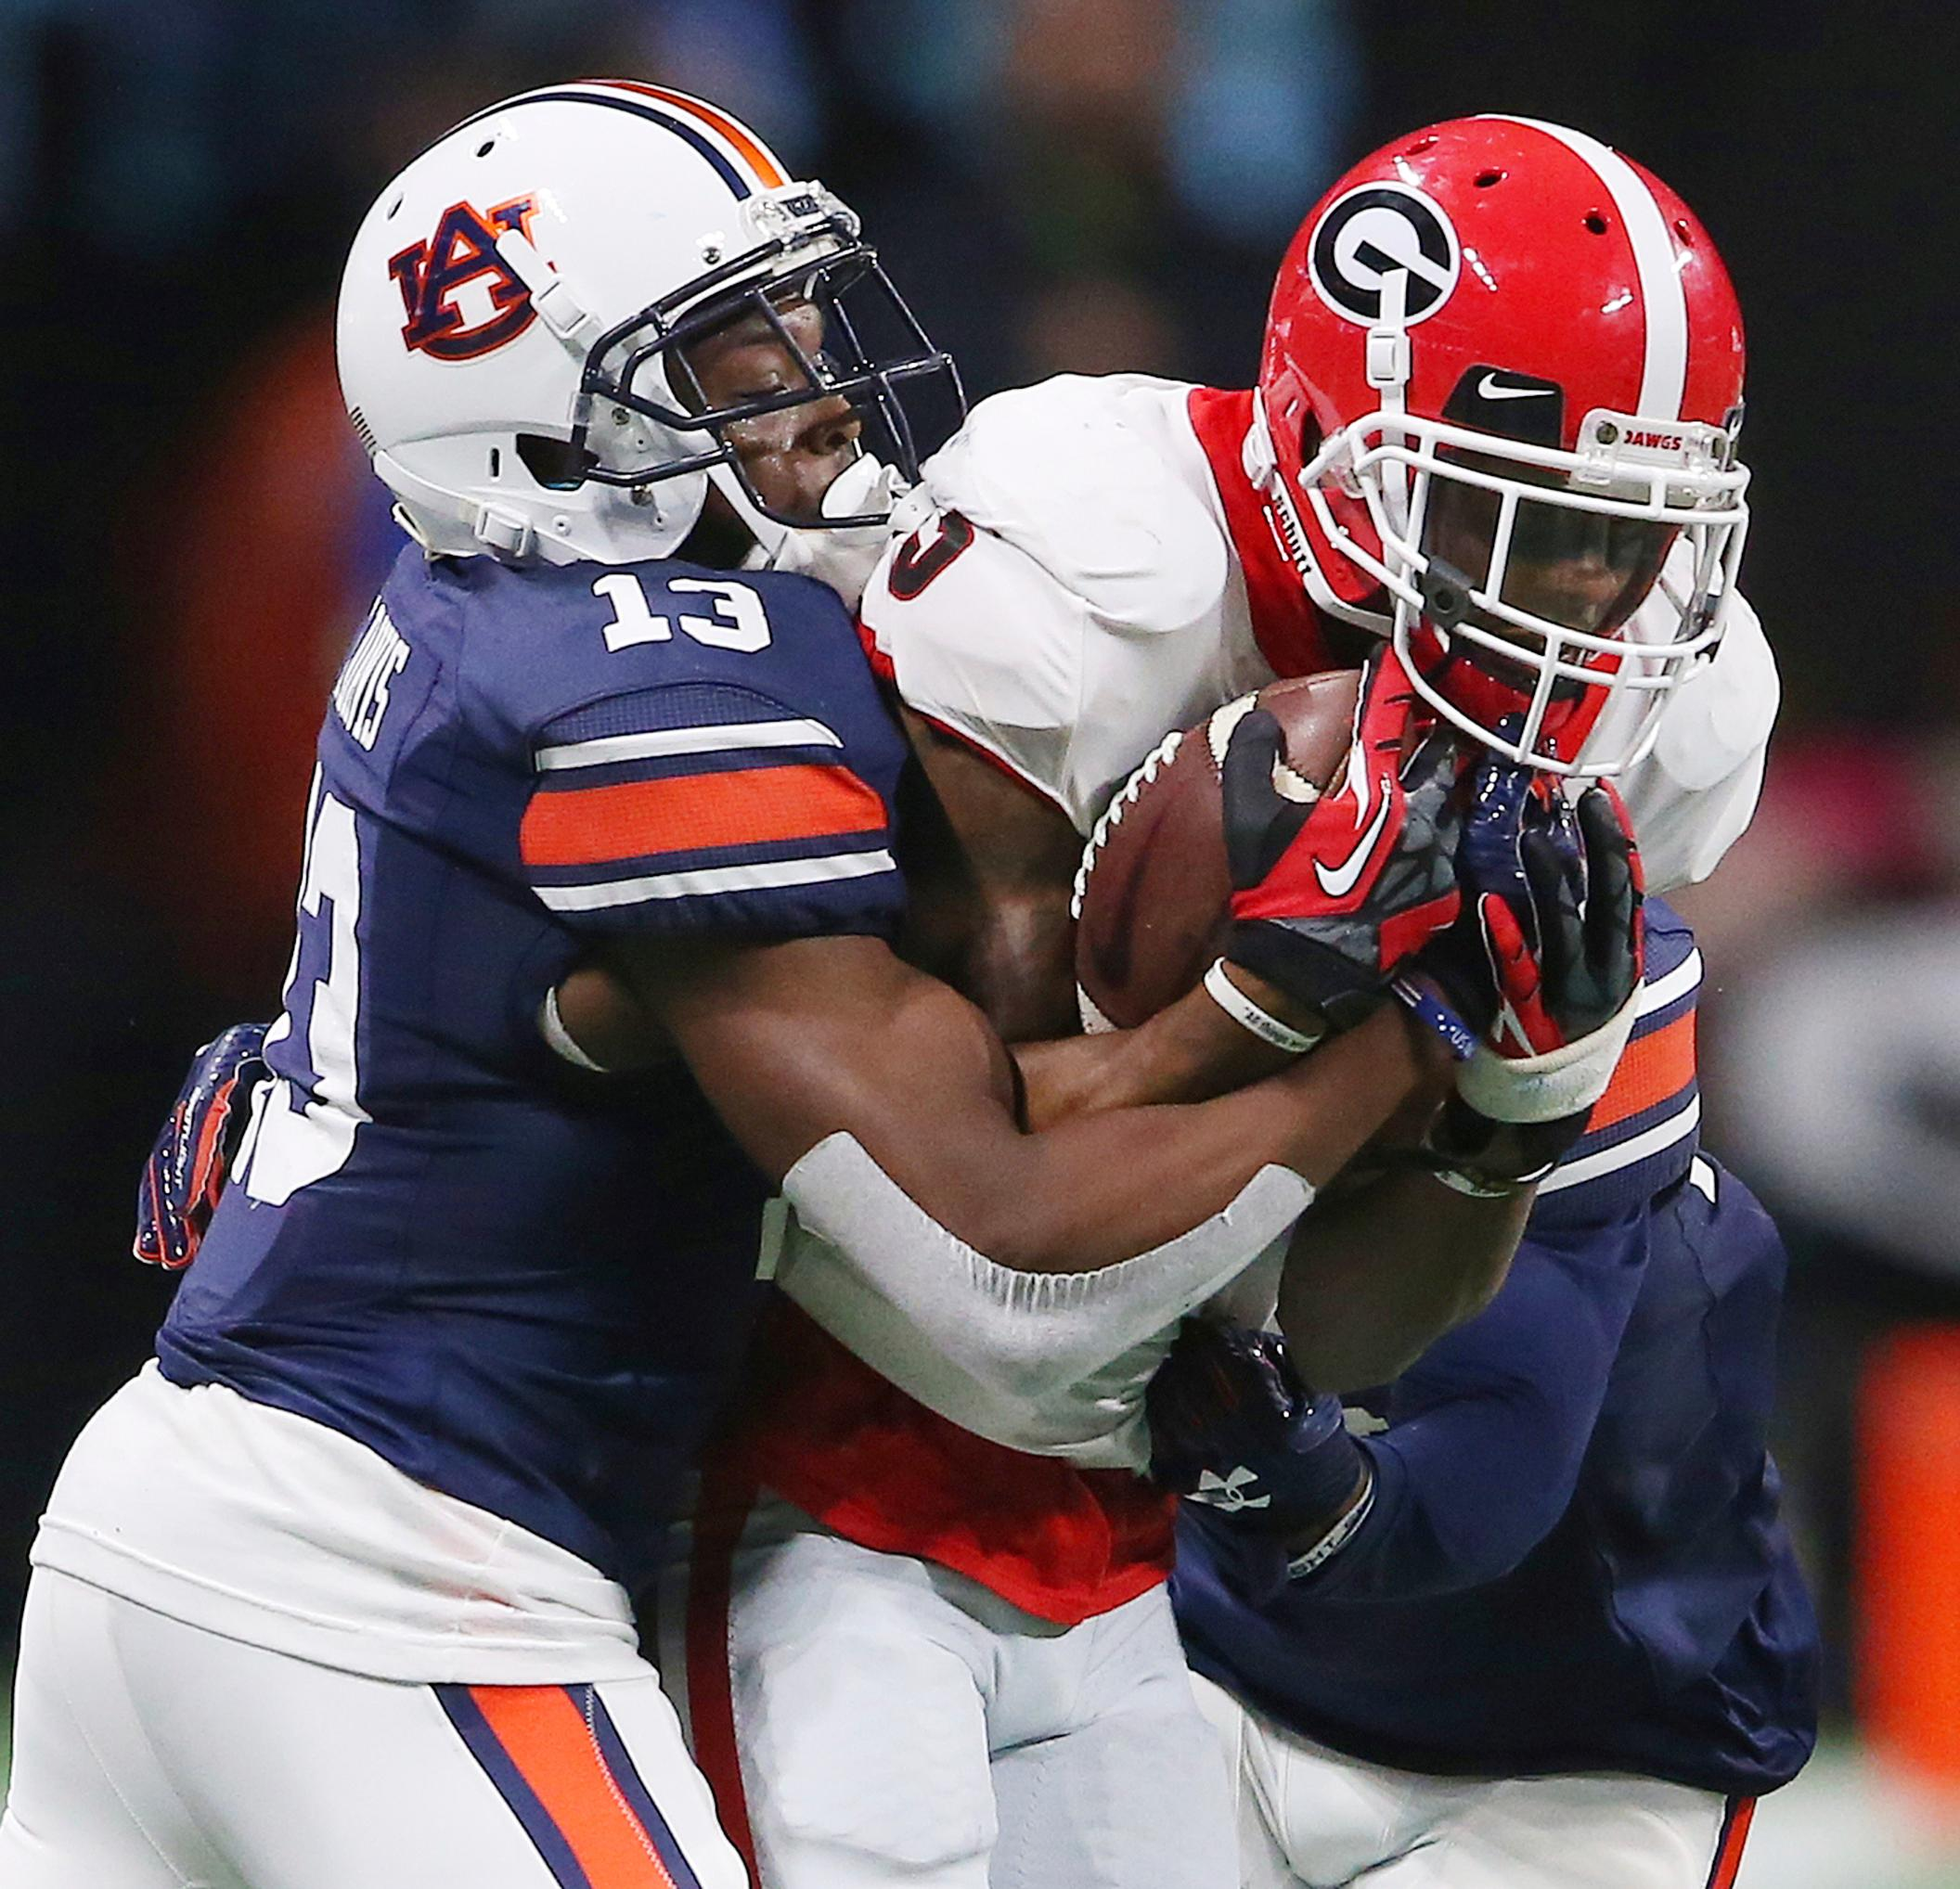 Auburn defensive back Javaris Davis (13) tackles Georgia wide receiver Terry Godwin (5) during the second half of the Southeastern Conference championship NCAA college football game, Saturday, Dec. 2, 2017, in Atlanta. (AP Photo/John Bazemore)